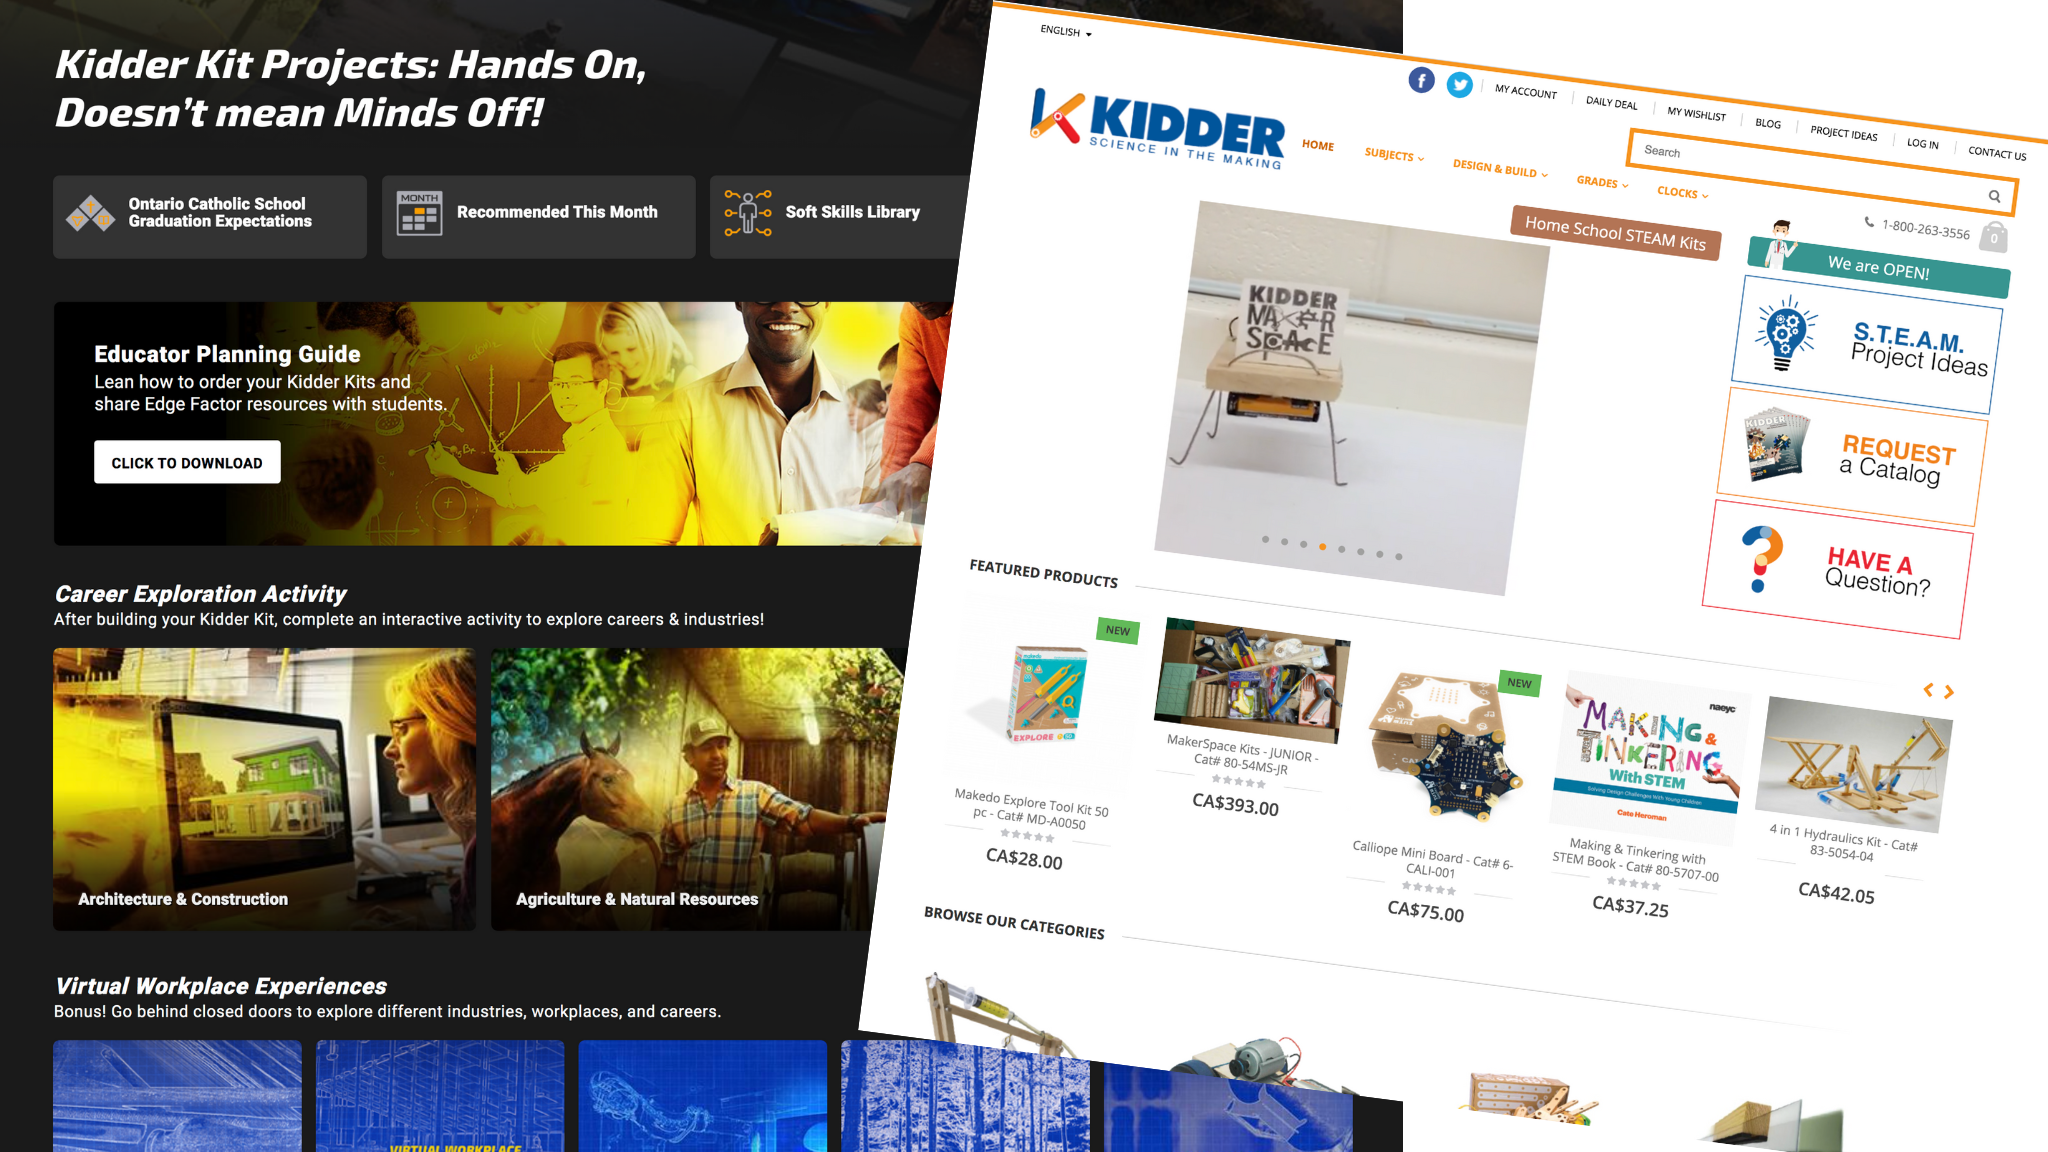 Edge Factor aligns with Kidder Kits to inspire career exploration.